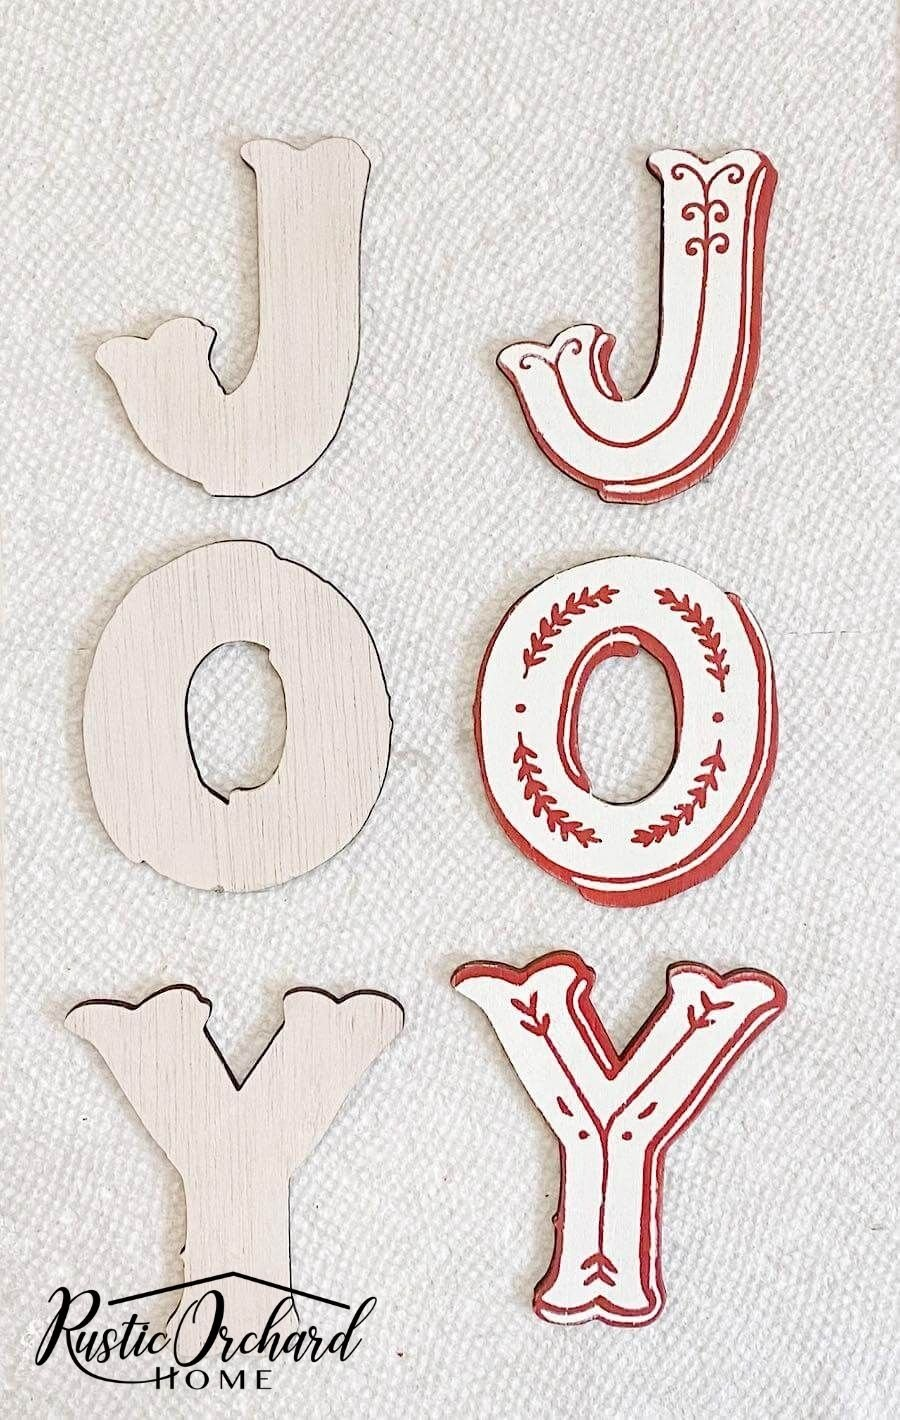 This JOY Holiday Sign idea uses multiple elements to bring interest and FUN to the holiday crafting season.